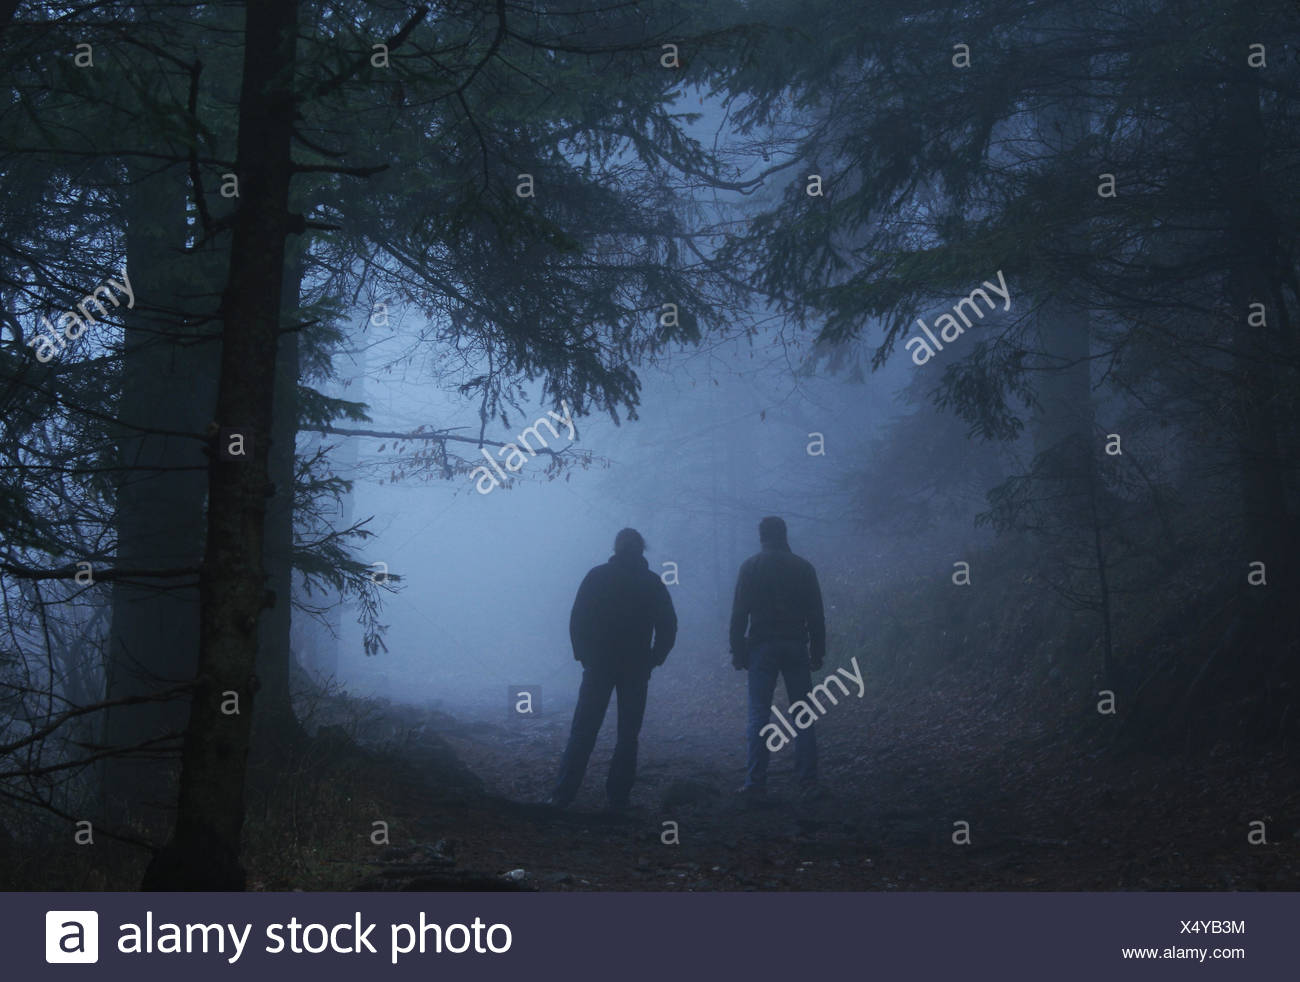 Mystical - Stock Image